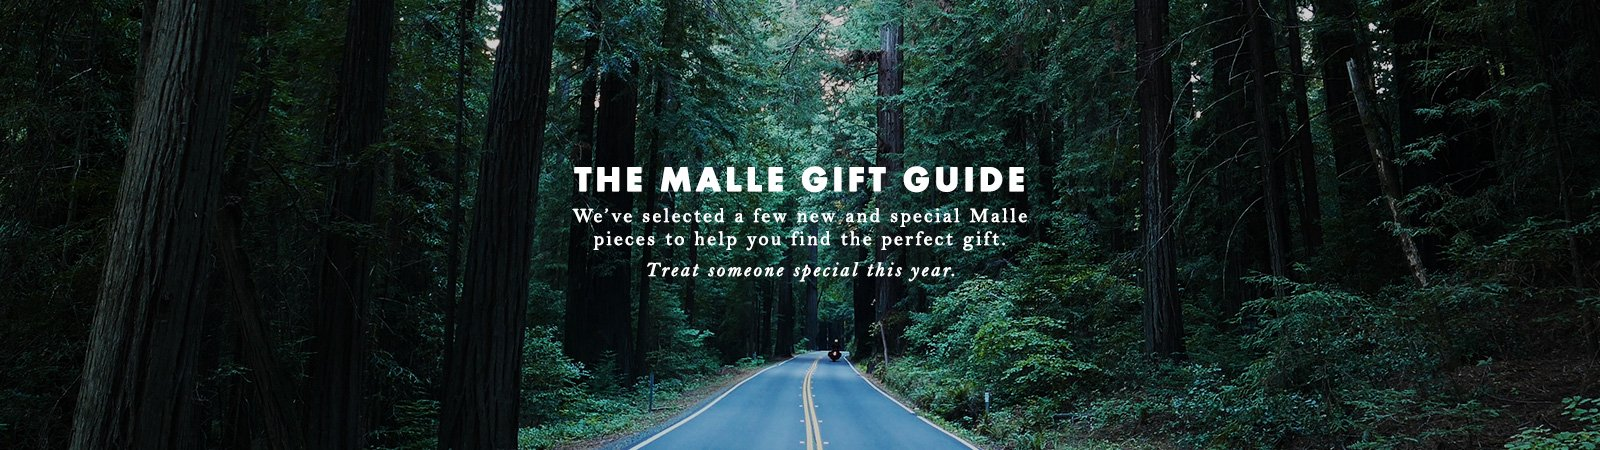 malle-london-gift-guide-home